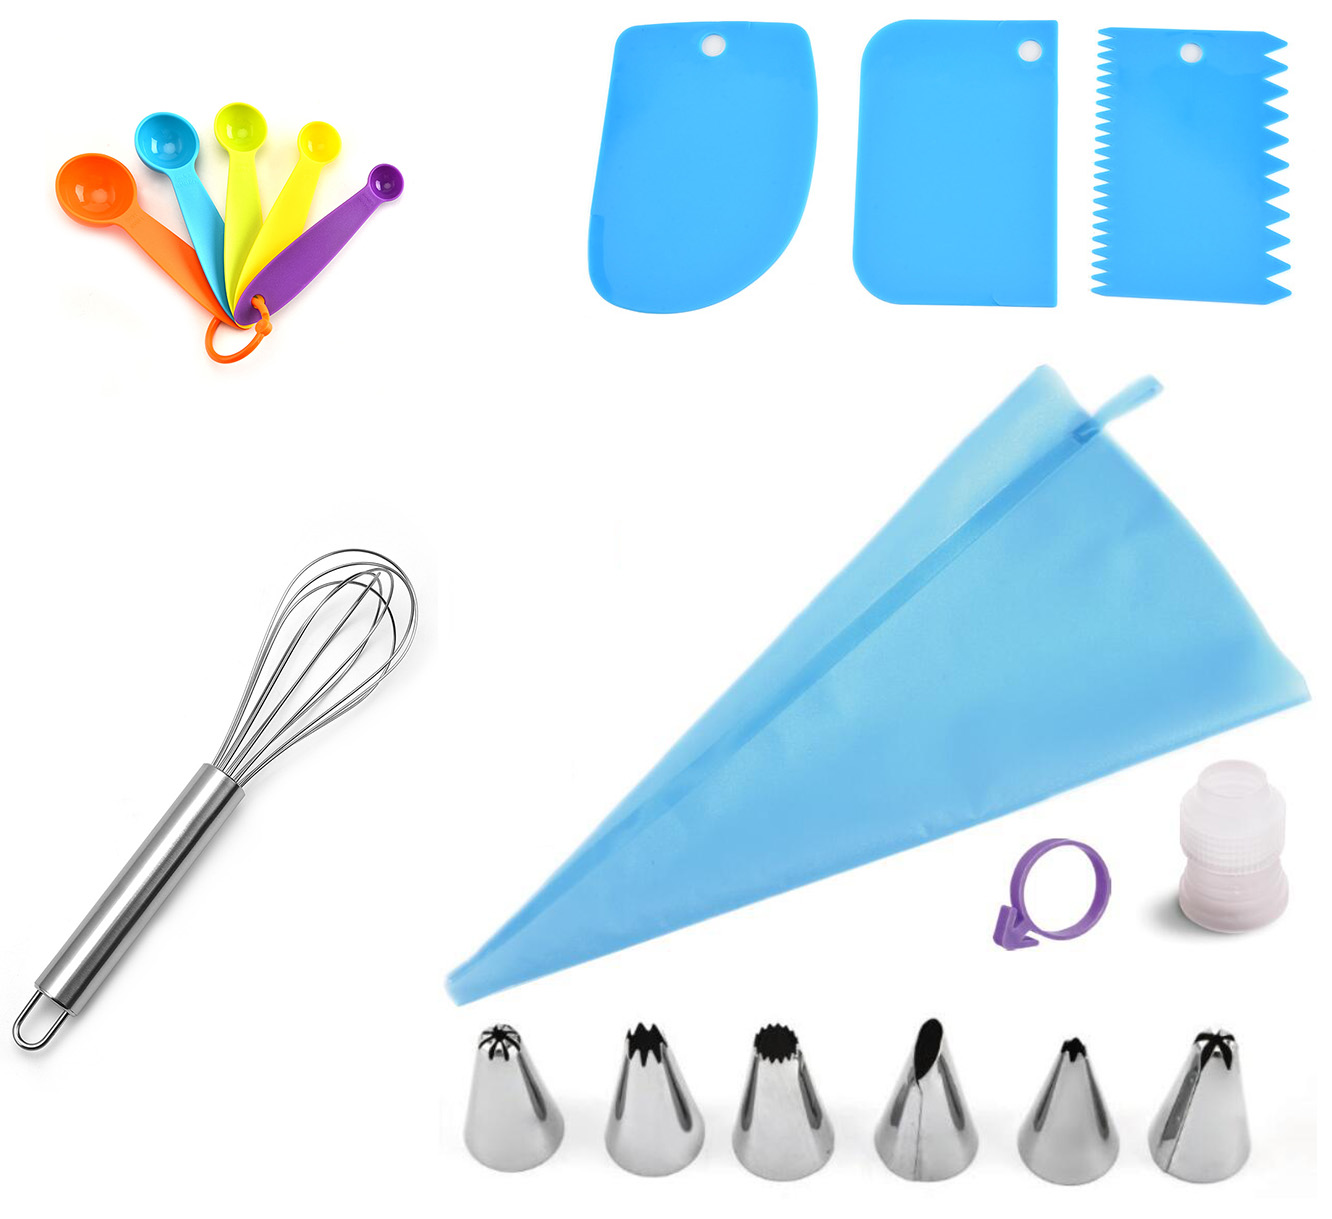 17 or 18 PCS Cake Tools Sets - Two Combinations of Cake Decorating Tools with 3 or 4 Functions Ideal for Cake Making Beginners